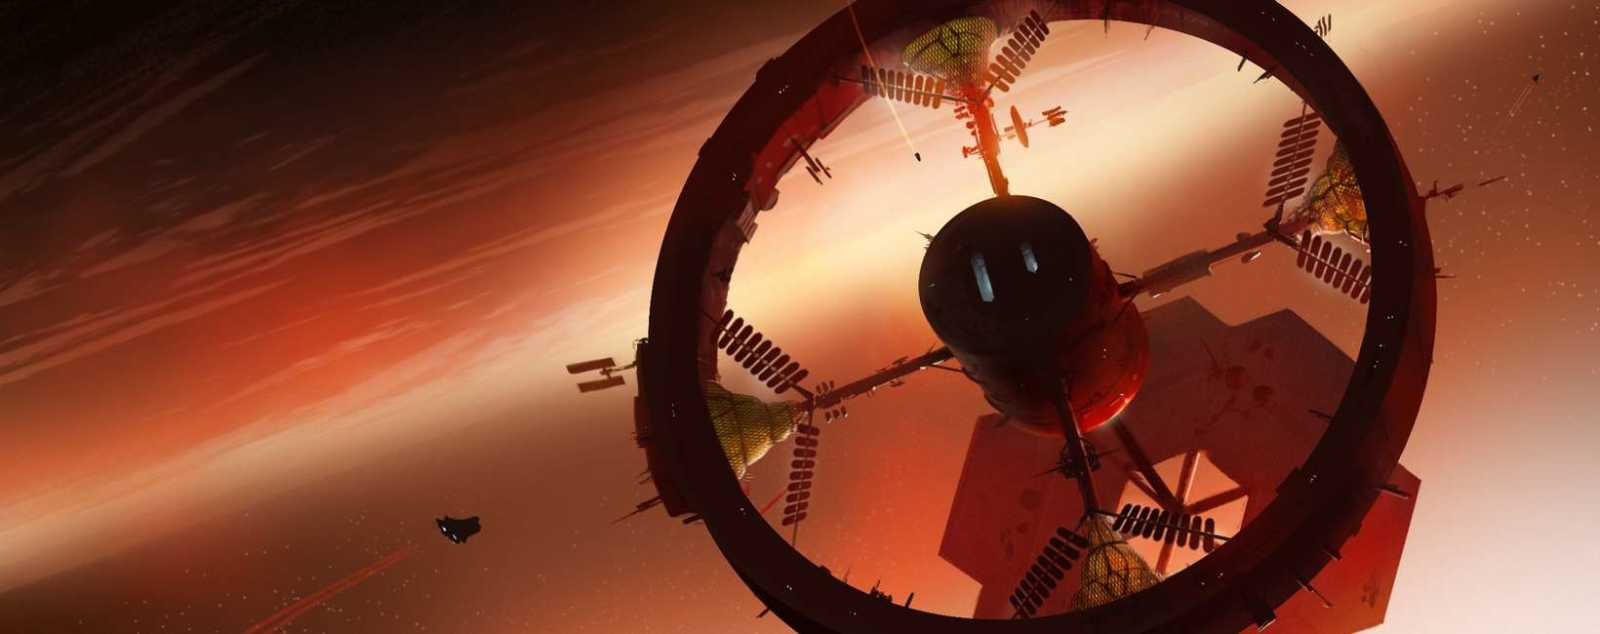 Space-ships approach a space-station in orbit around a planet.